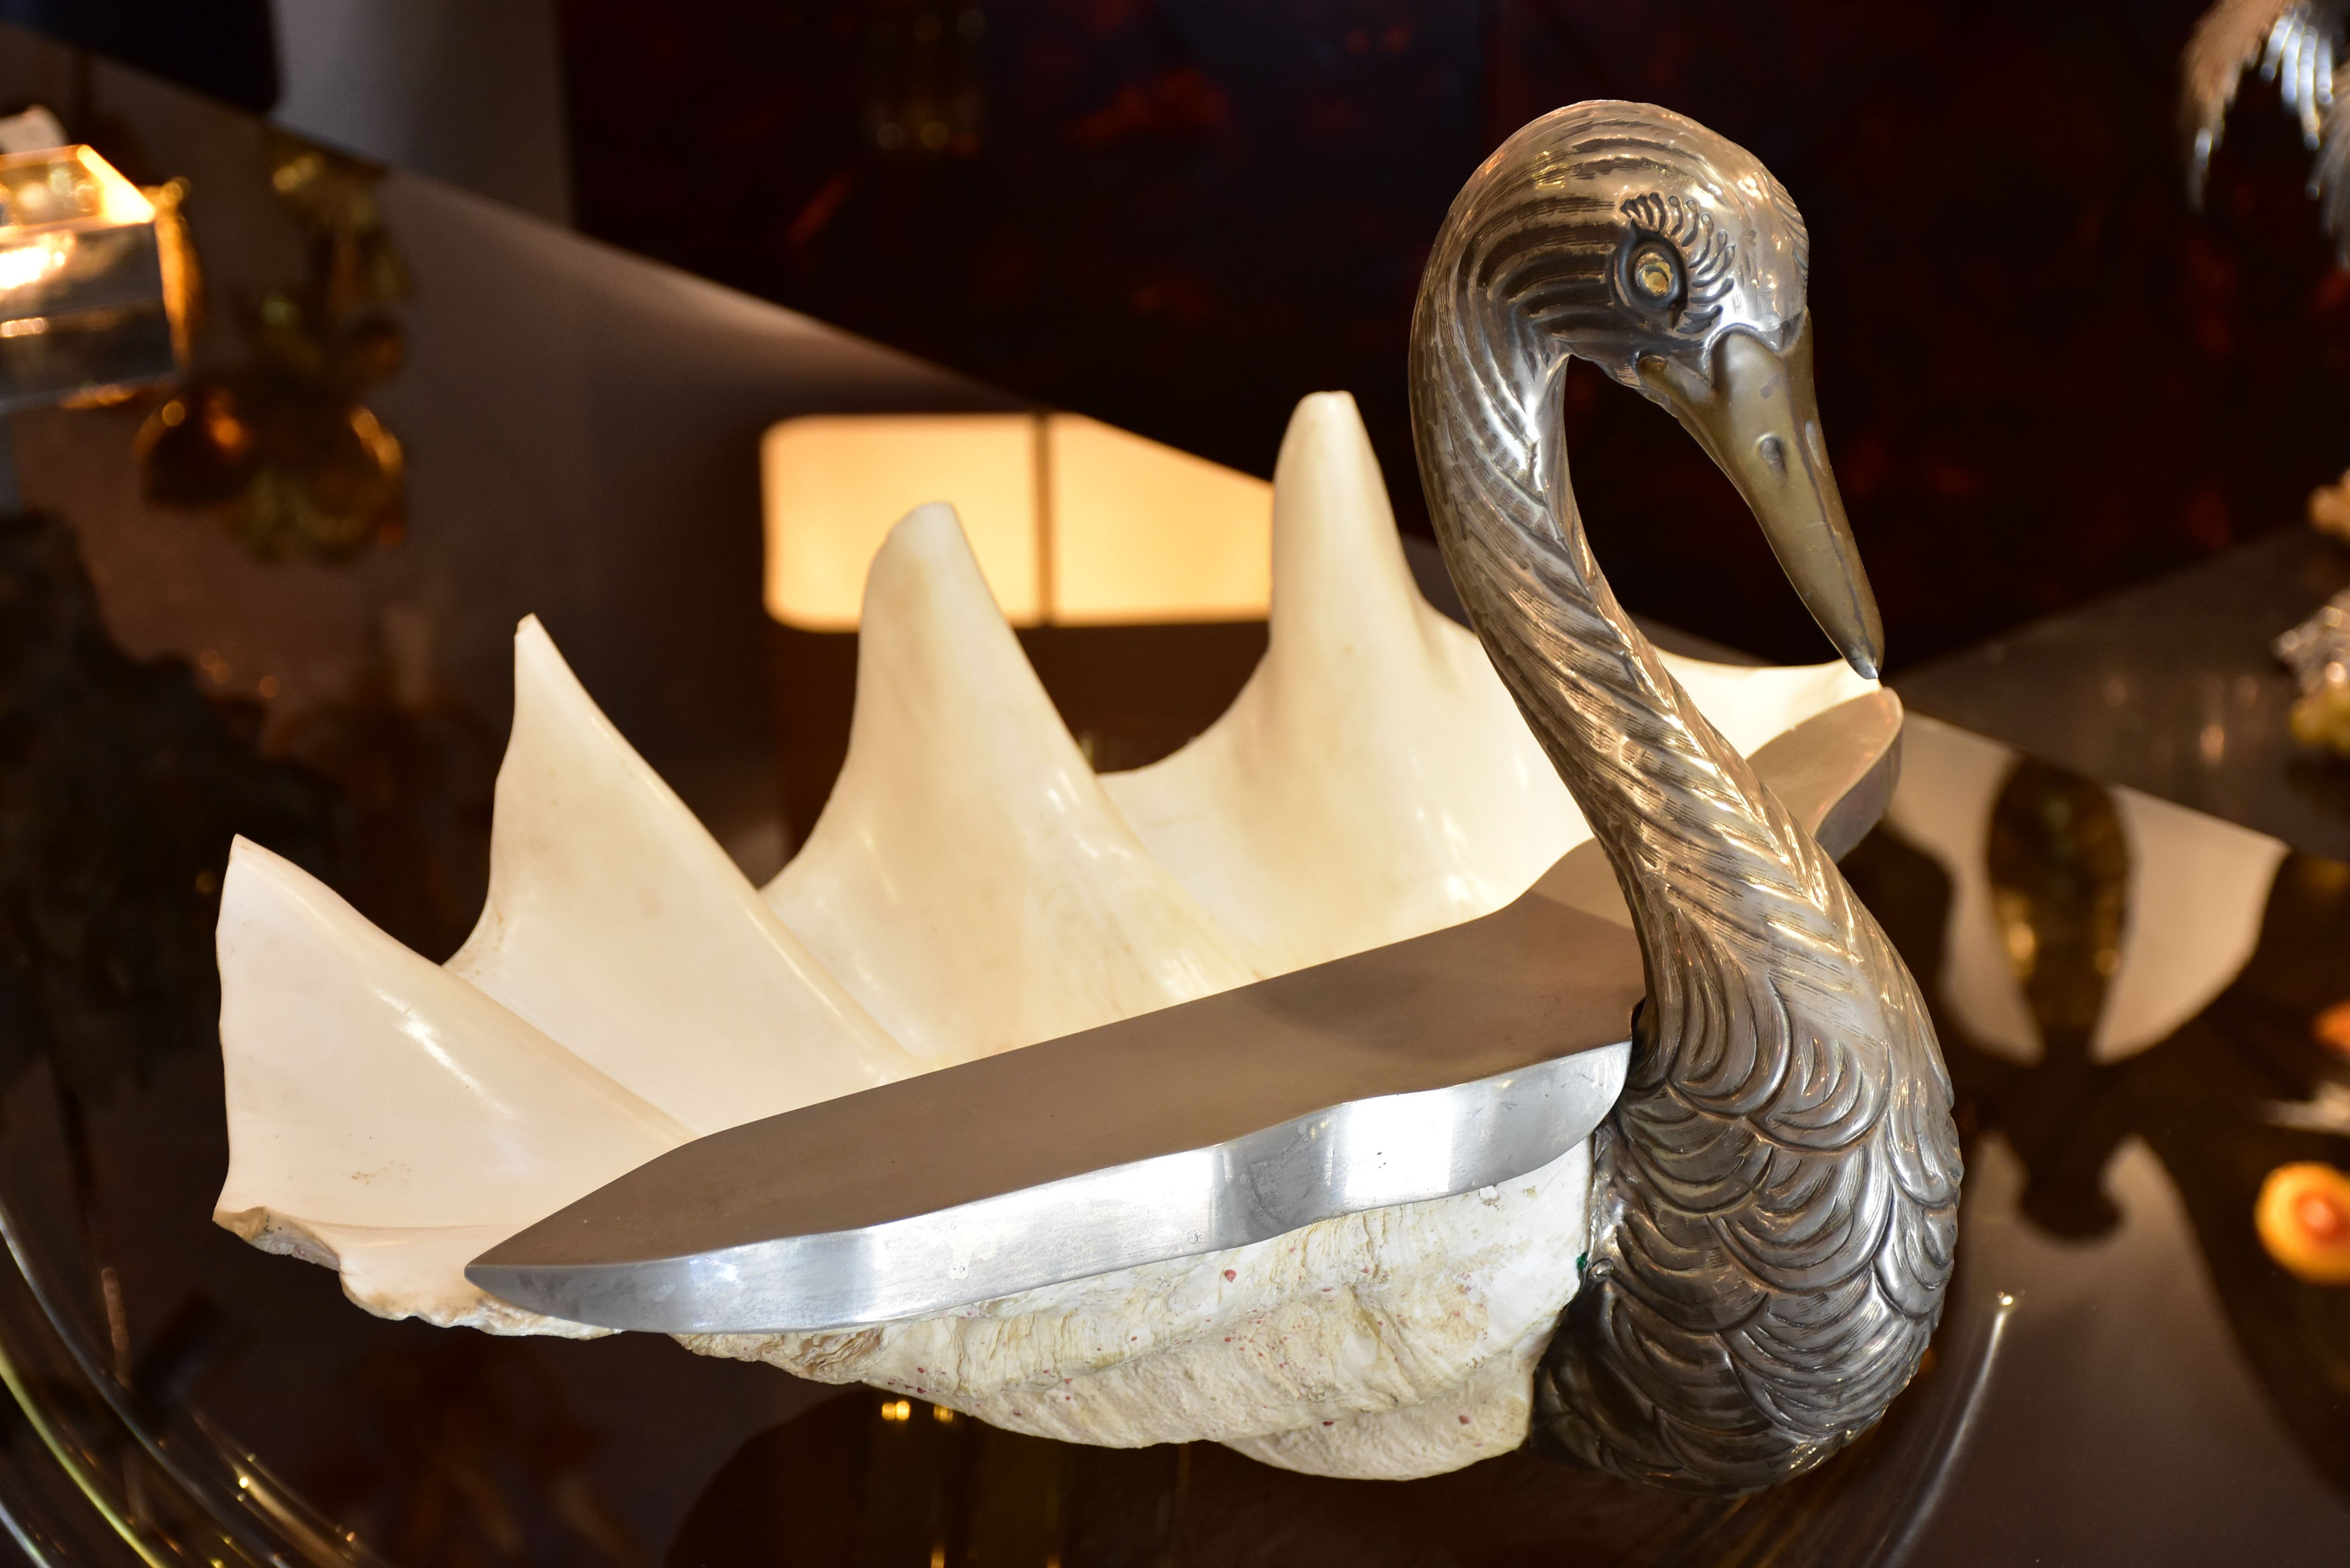 Giant clamshell swan by Gabriella Binazzi